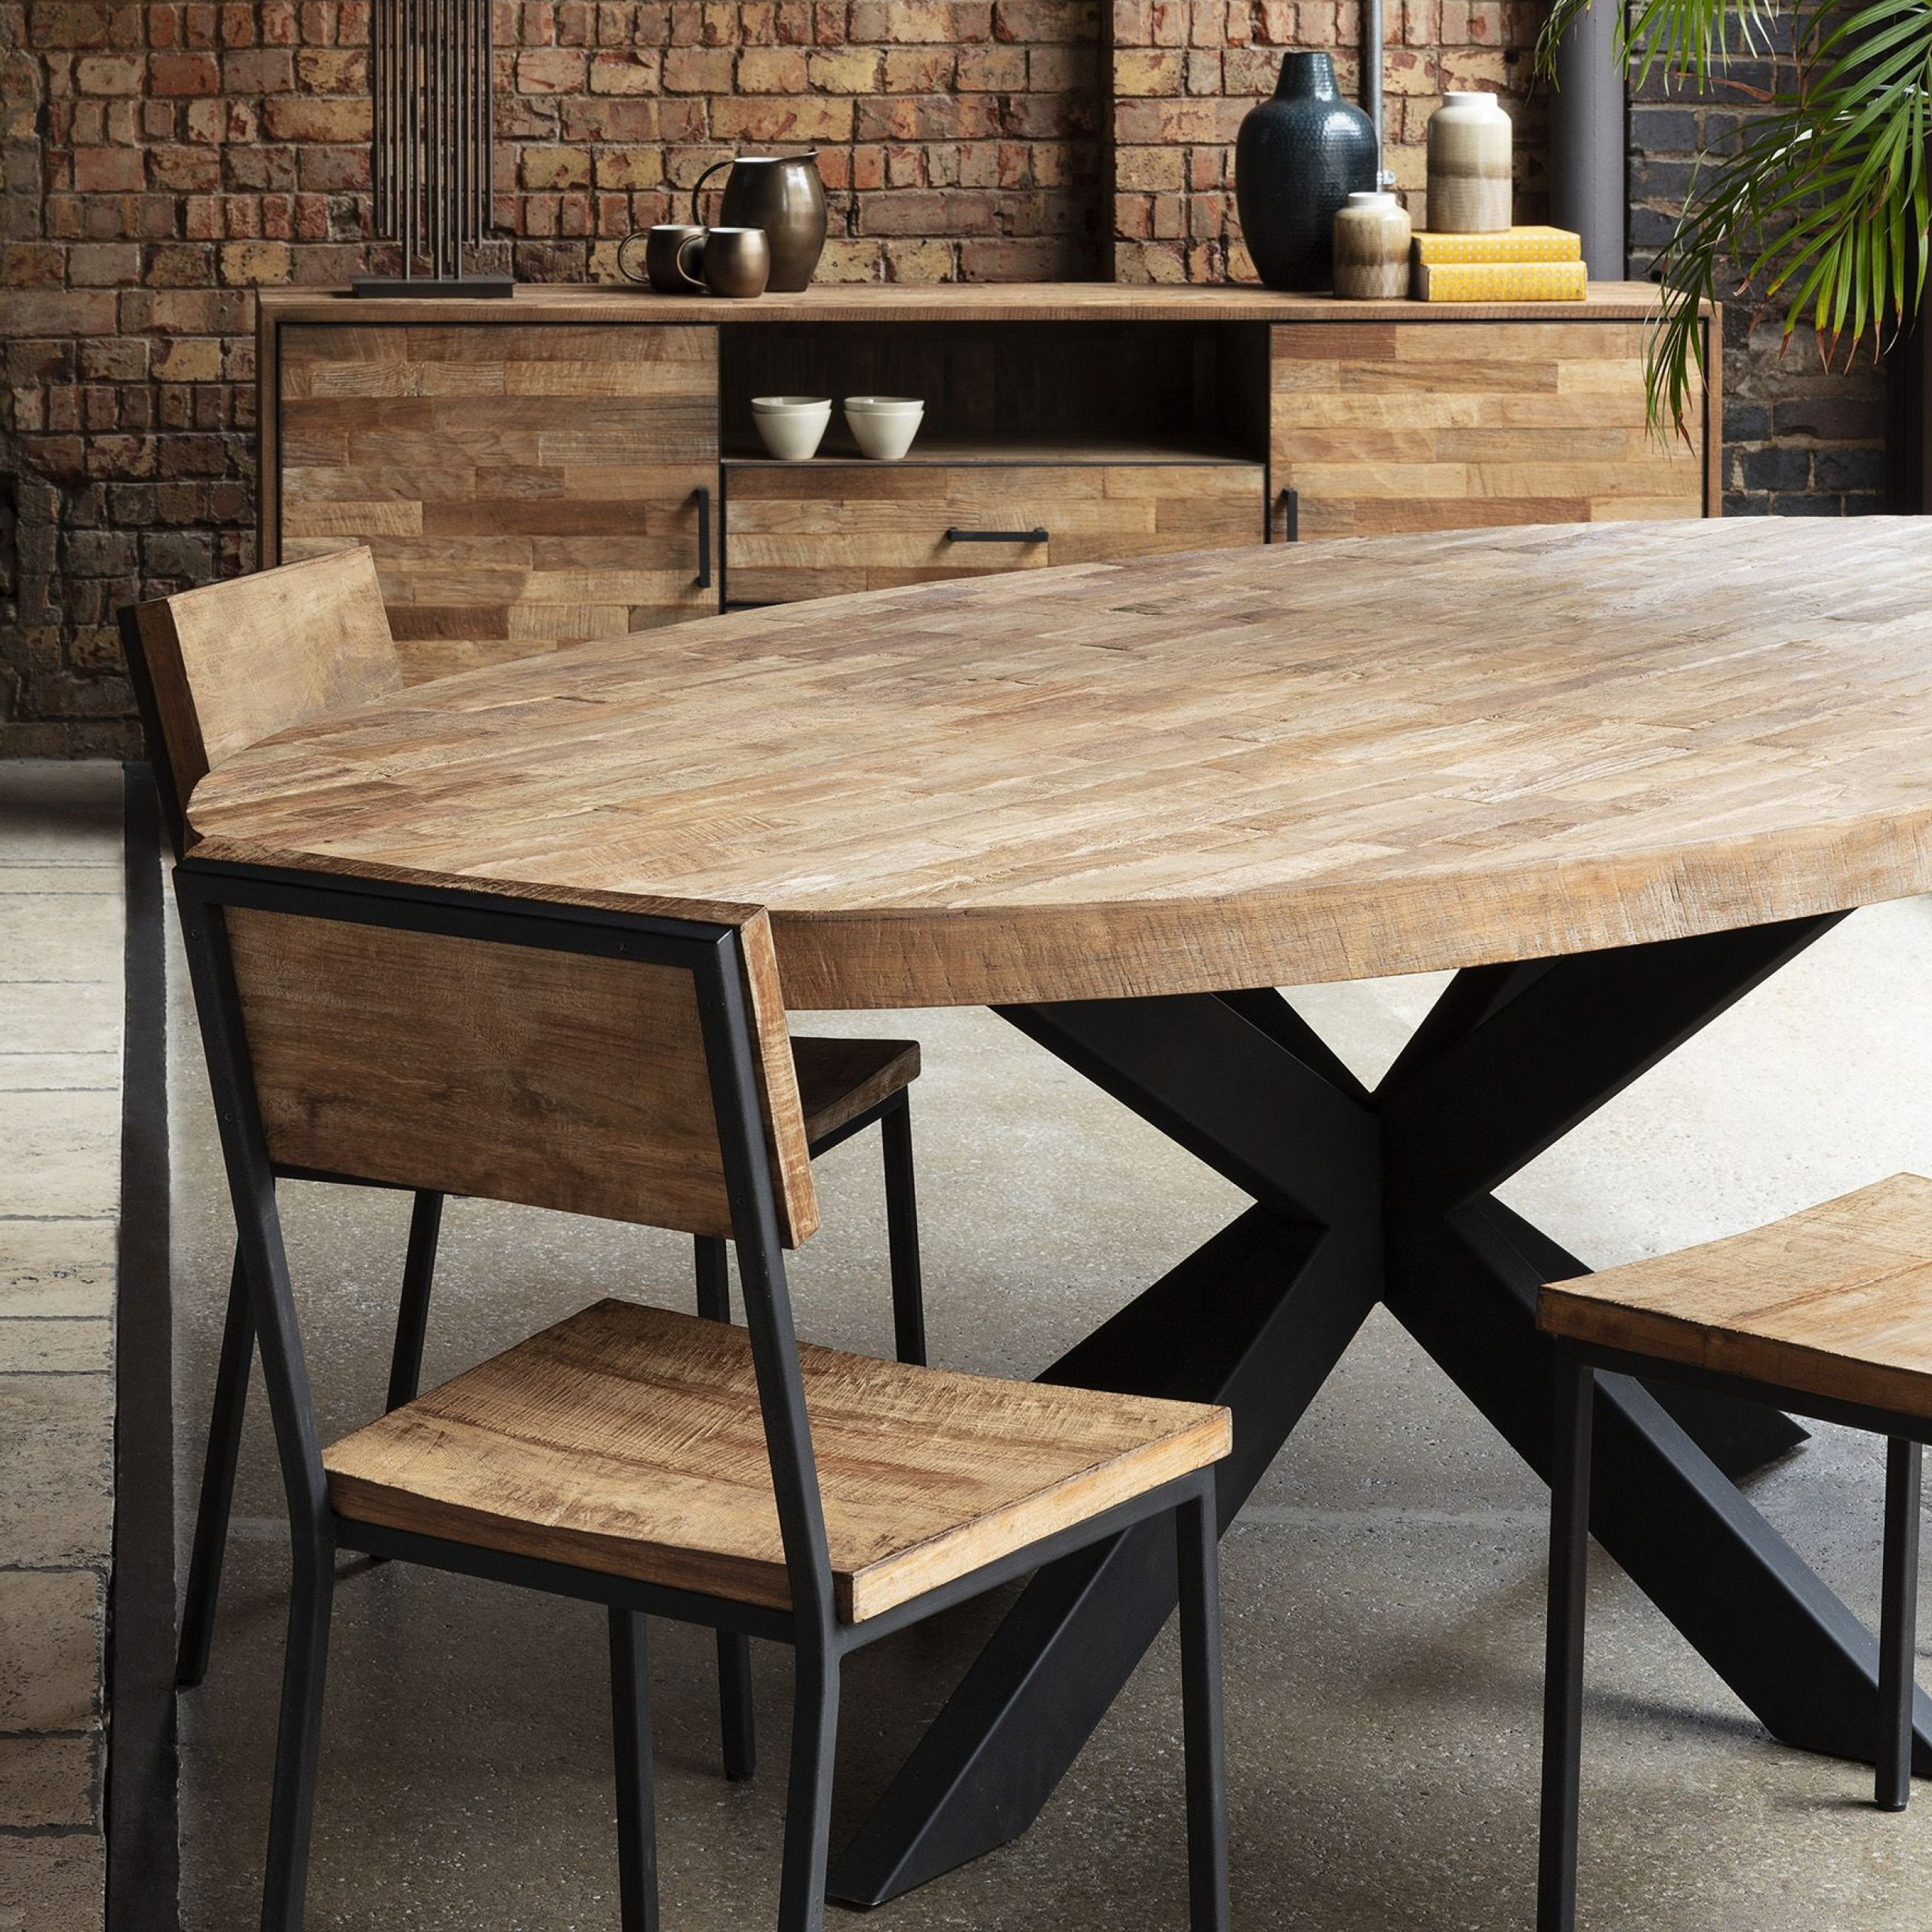 Large Round Dining Regarding Most Up To Date Acacia Dining Tables With Black Legs (View 17 of 30)